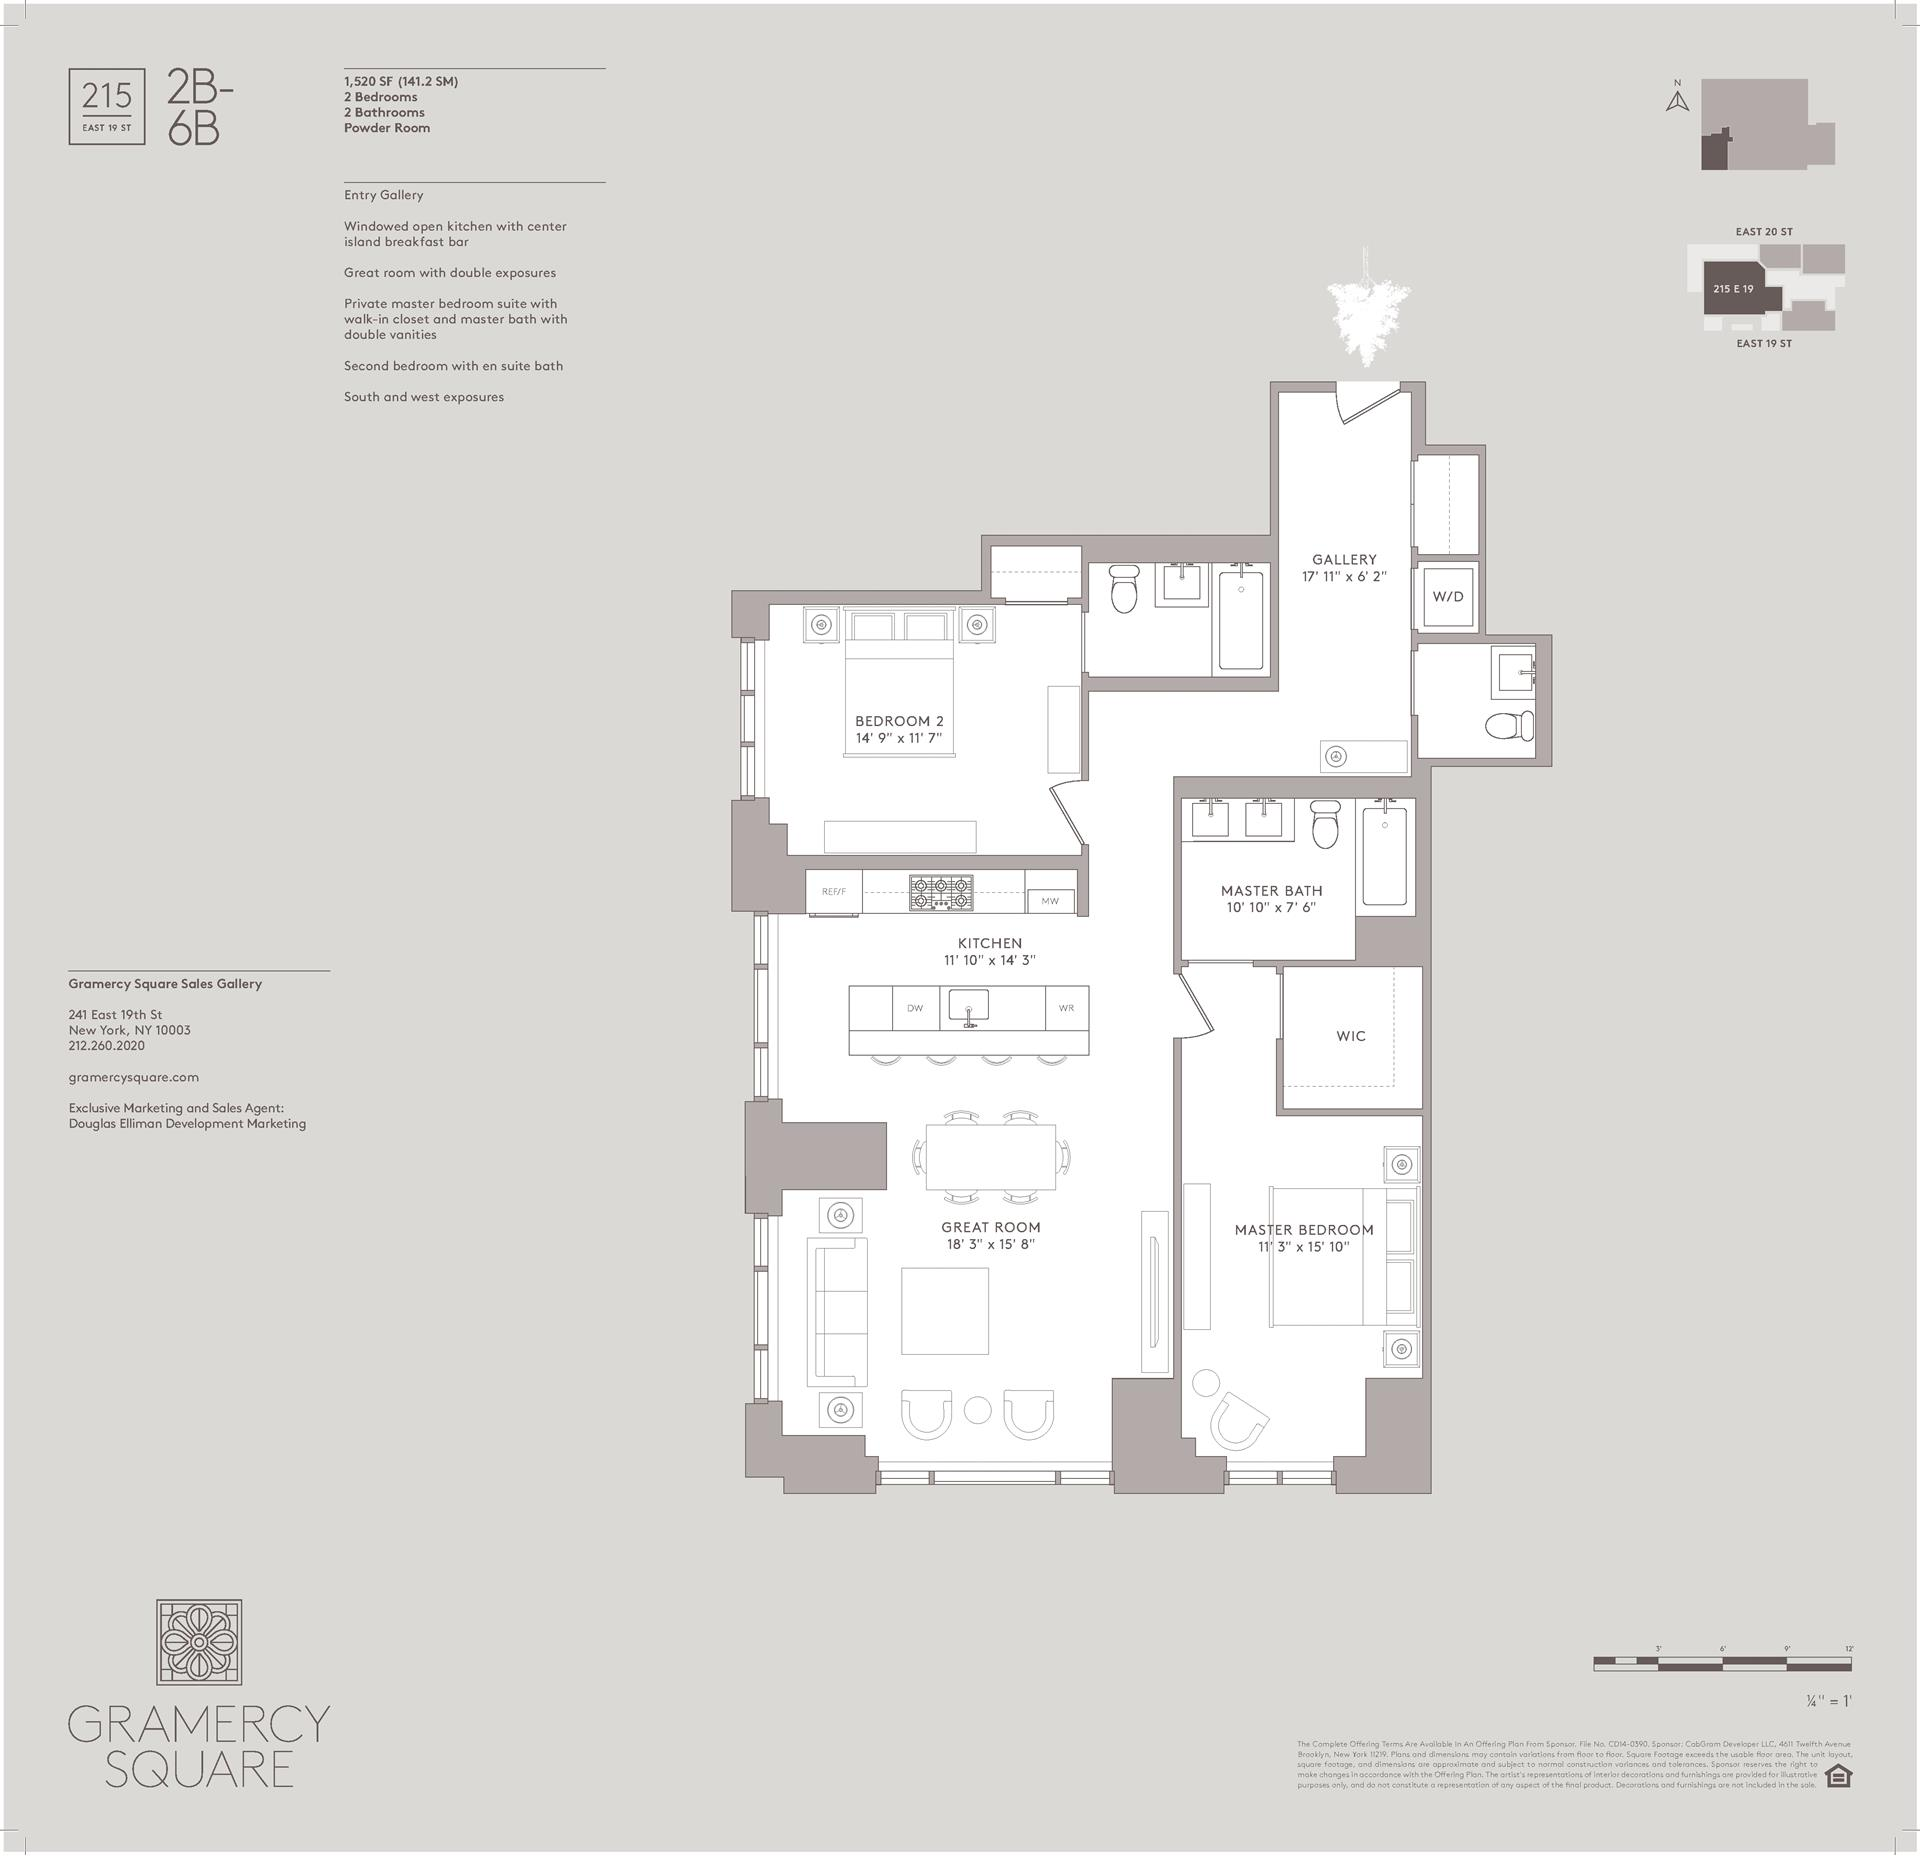 Floor plan of Gramercy Square, 215 East 19th St, 3B - Gramercy - Union Square, New York